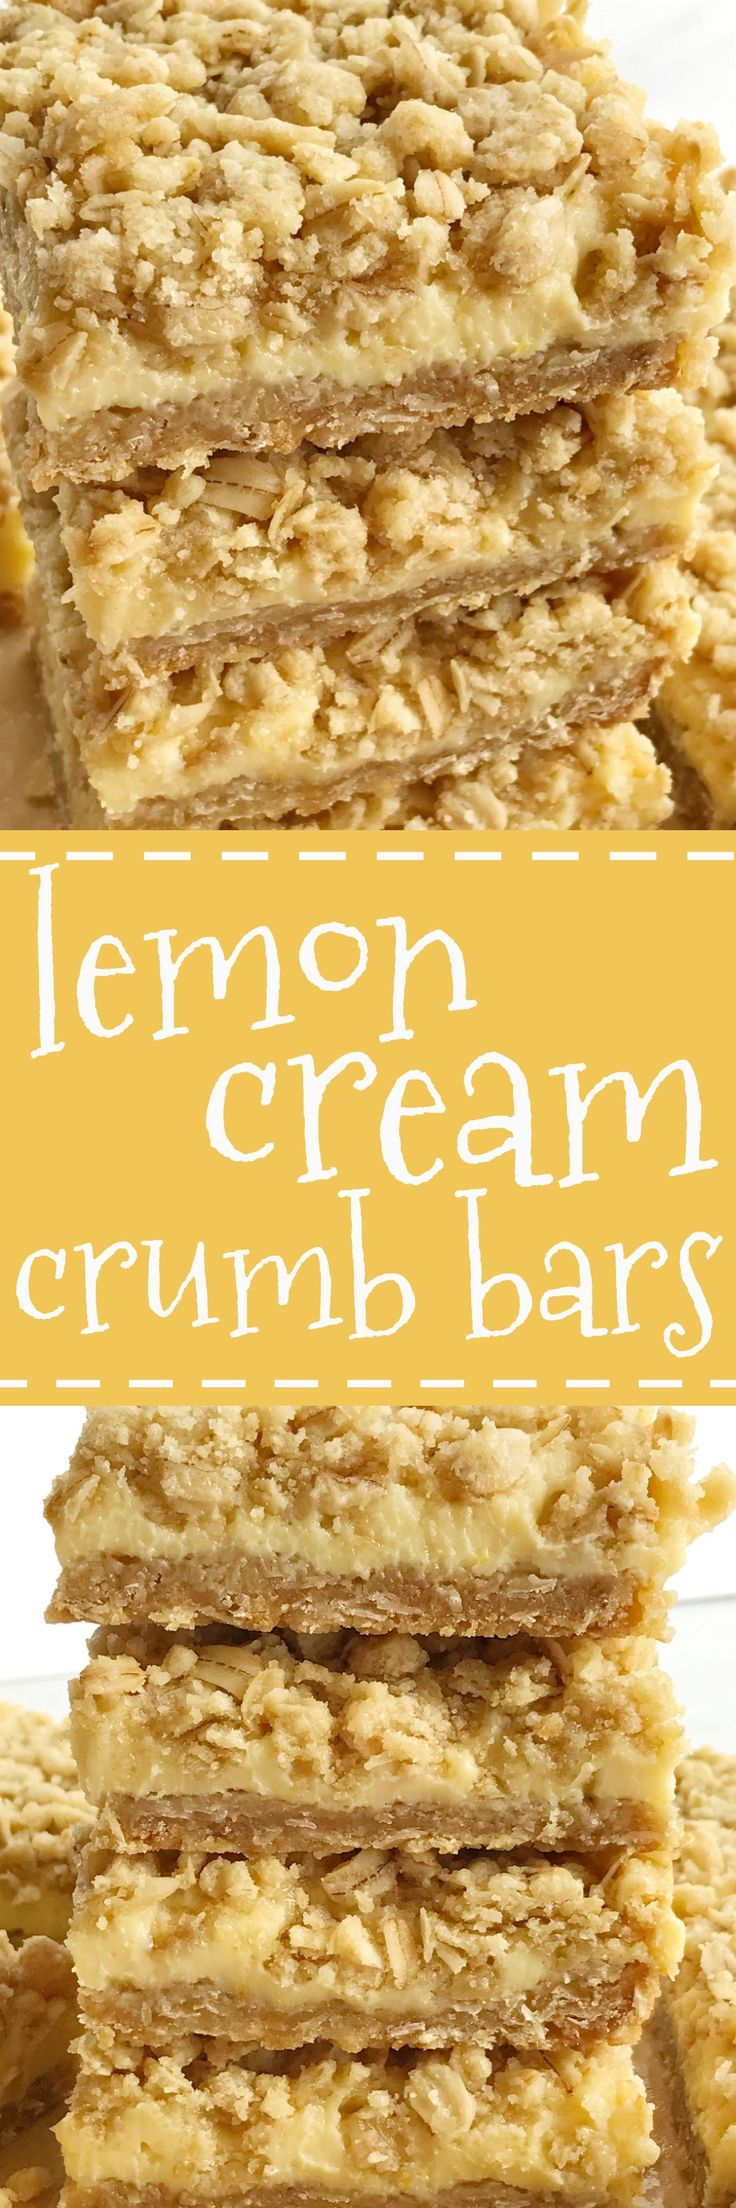 Creamy, tart, silky smooth lemon cream with a thick layer of a sweet oatmeal crust, and a good sprinkle of crumble on top. This is for all the lemon lovers out there. These lemon cream crumb bars are perfectly tart, sweet, and crumbly.